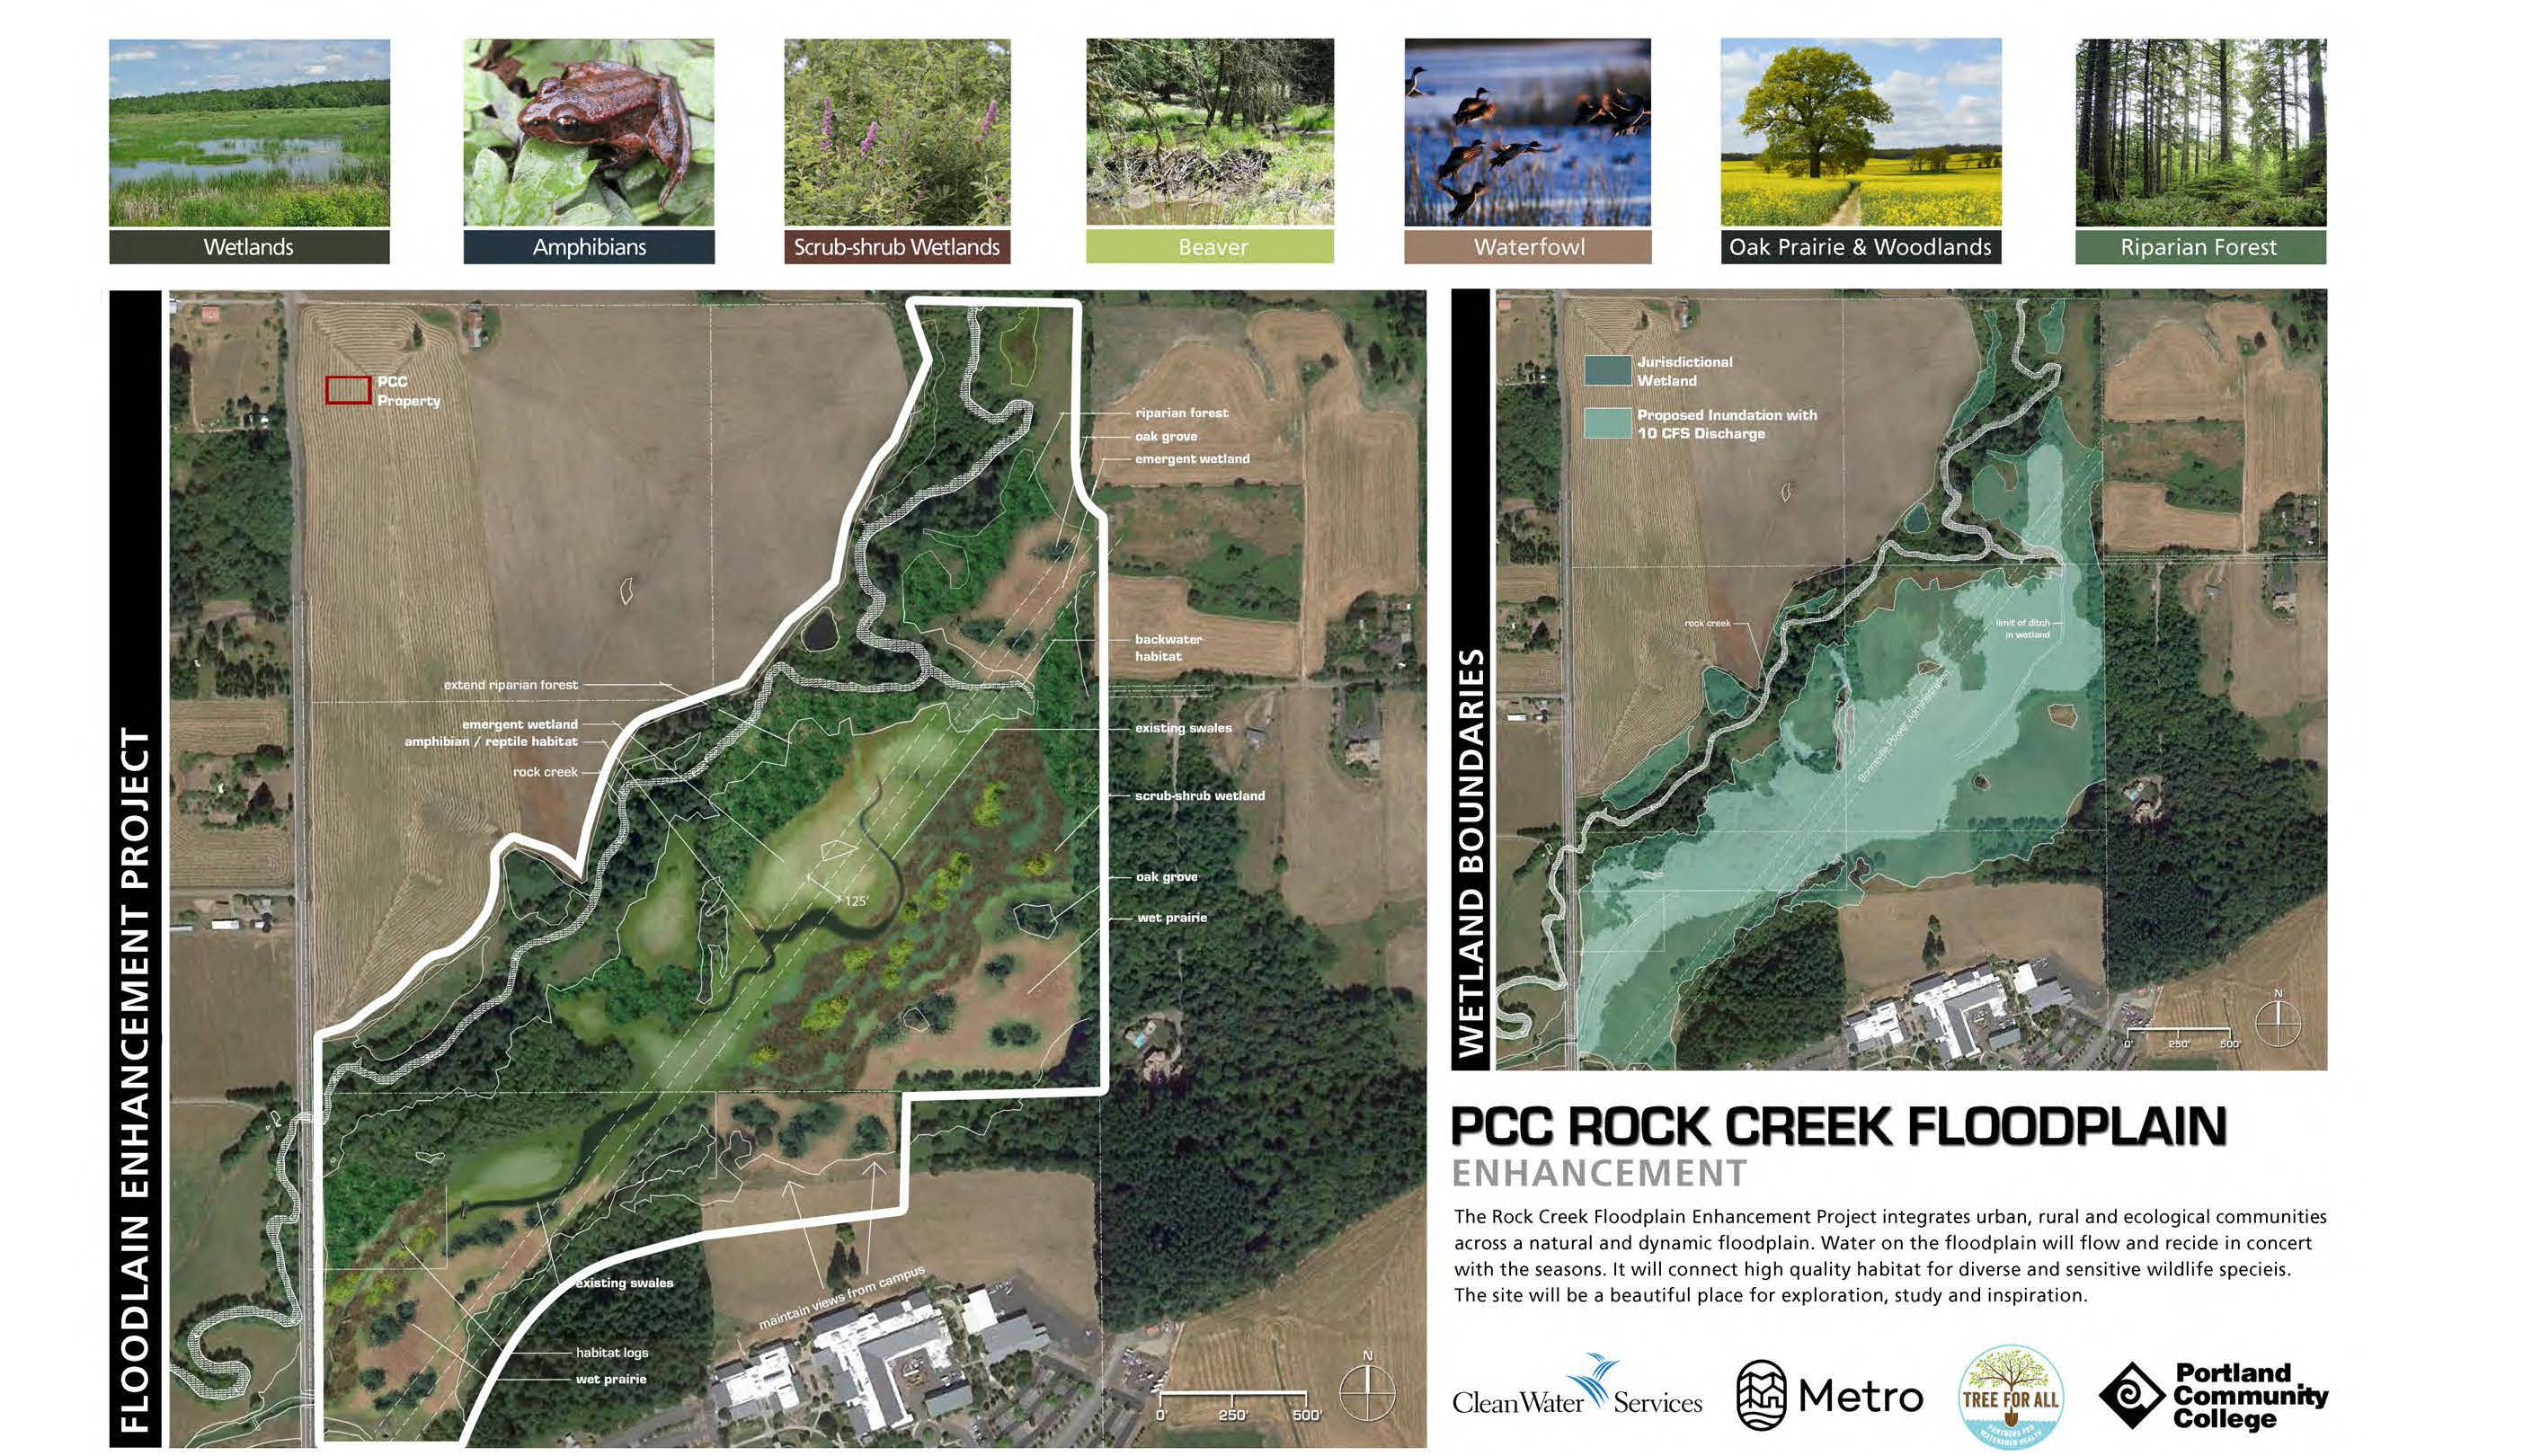 Aerial photo annotated to show desired plant communities in the Rock Creek floodplain